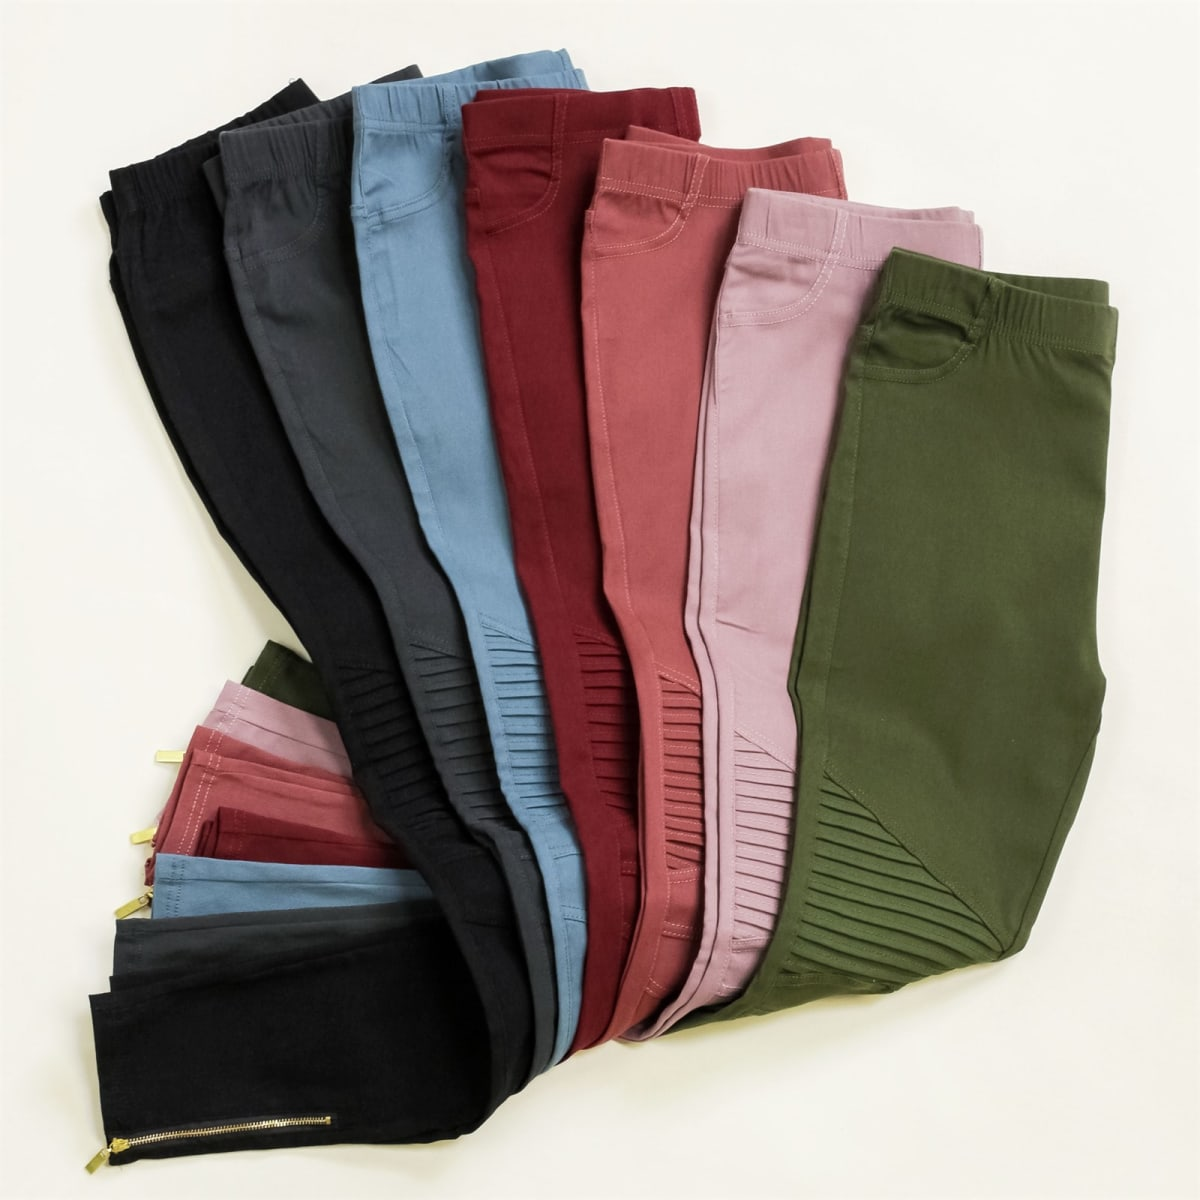 Stretch Moto Jeggings   S-3XL   Original price .95, NOW .99 + FREE SHIPPING!